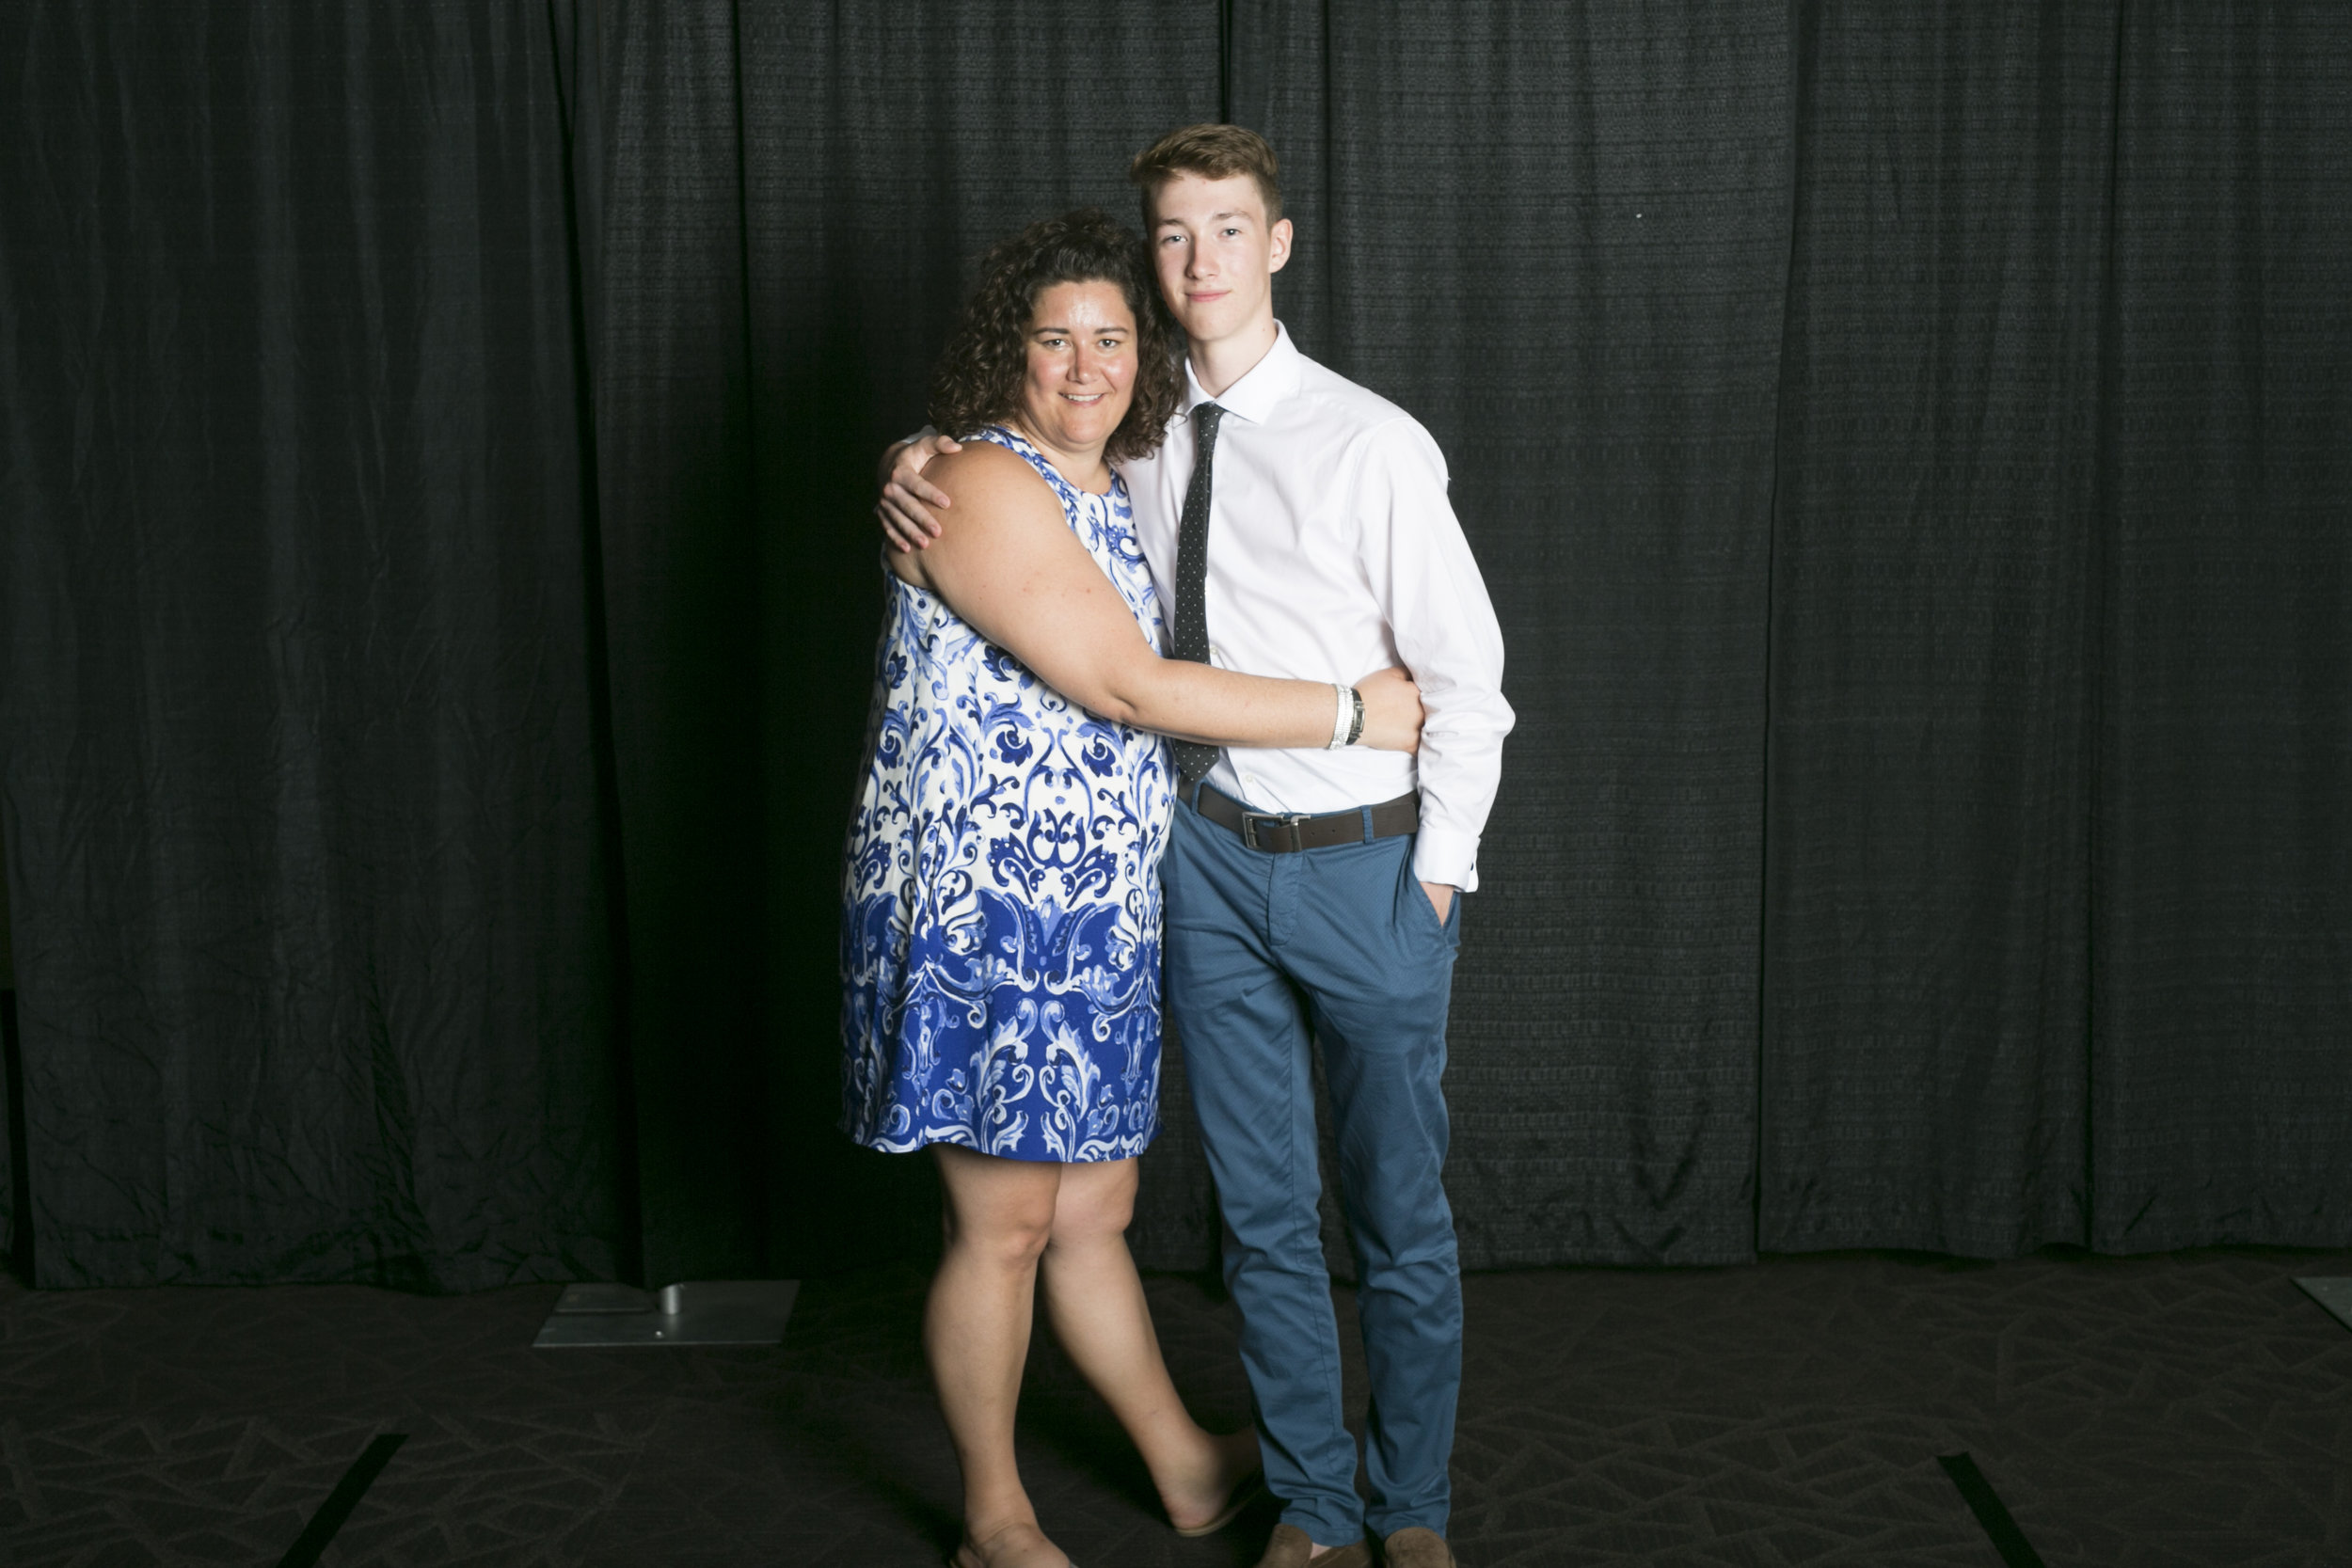 wedding photo booth-19.jpg